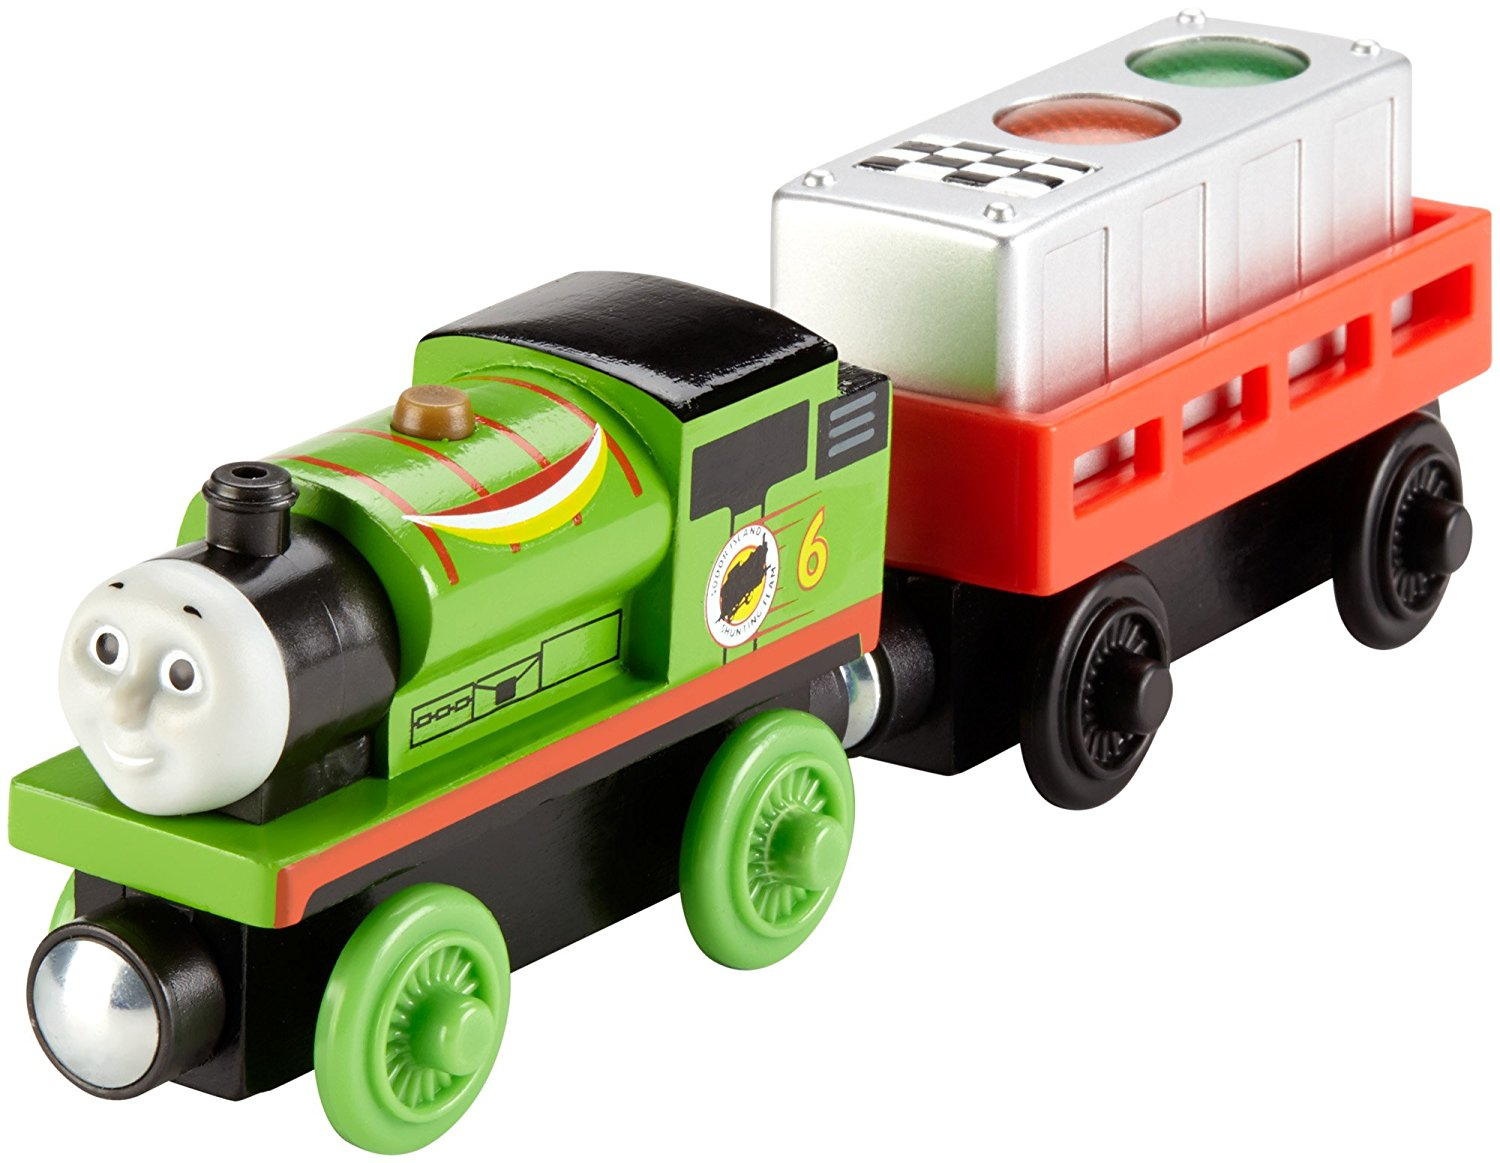 Fisher Price  Thomas & Friends Wooden Railway, Ready, Set, Race Percy - Battery Operated DFW80